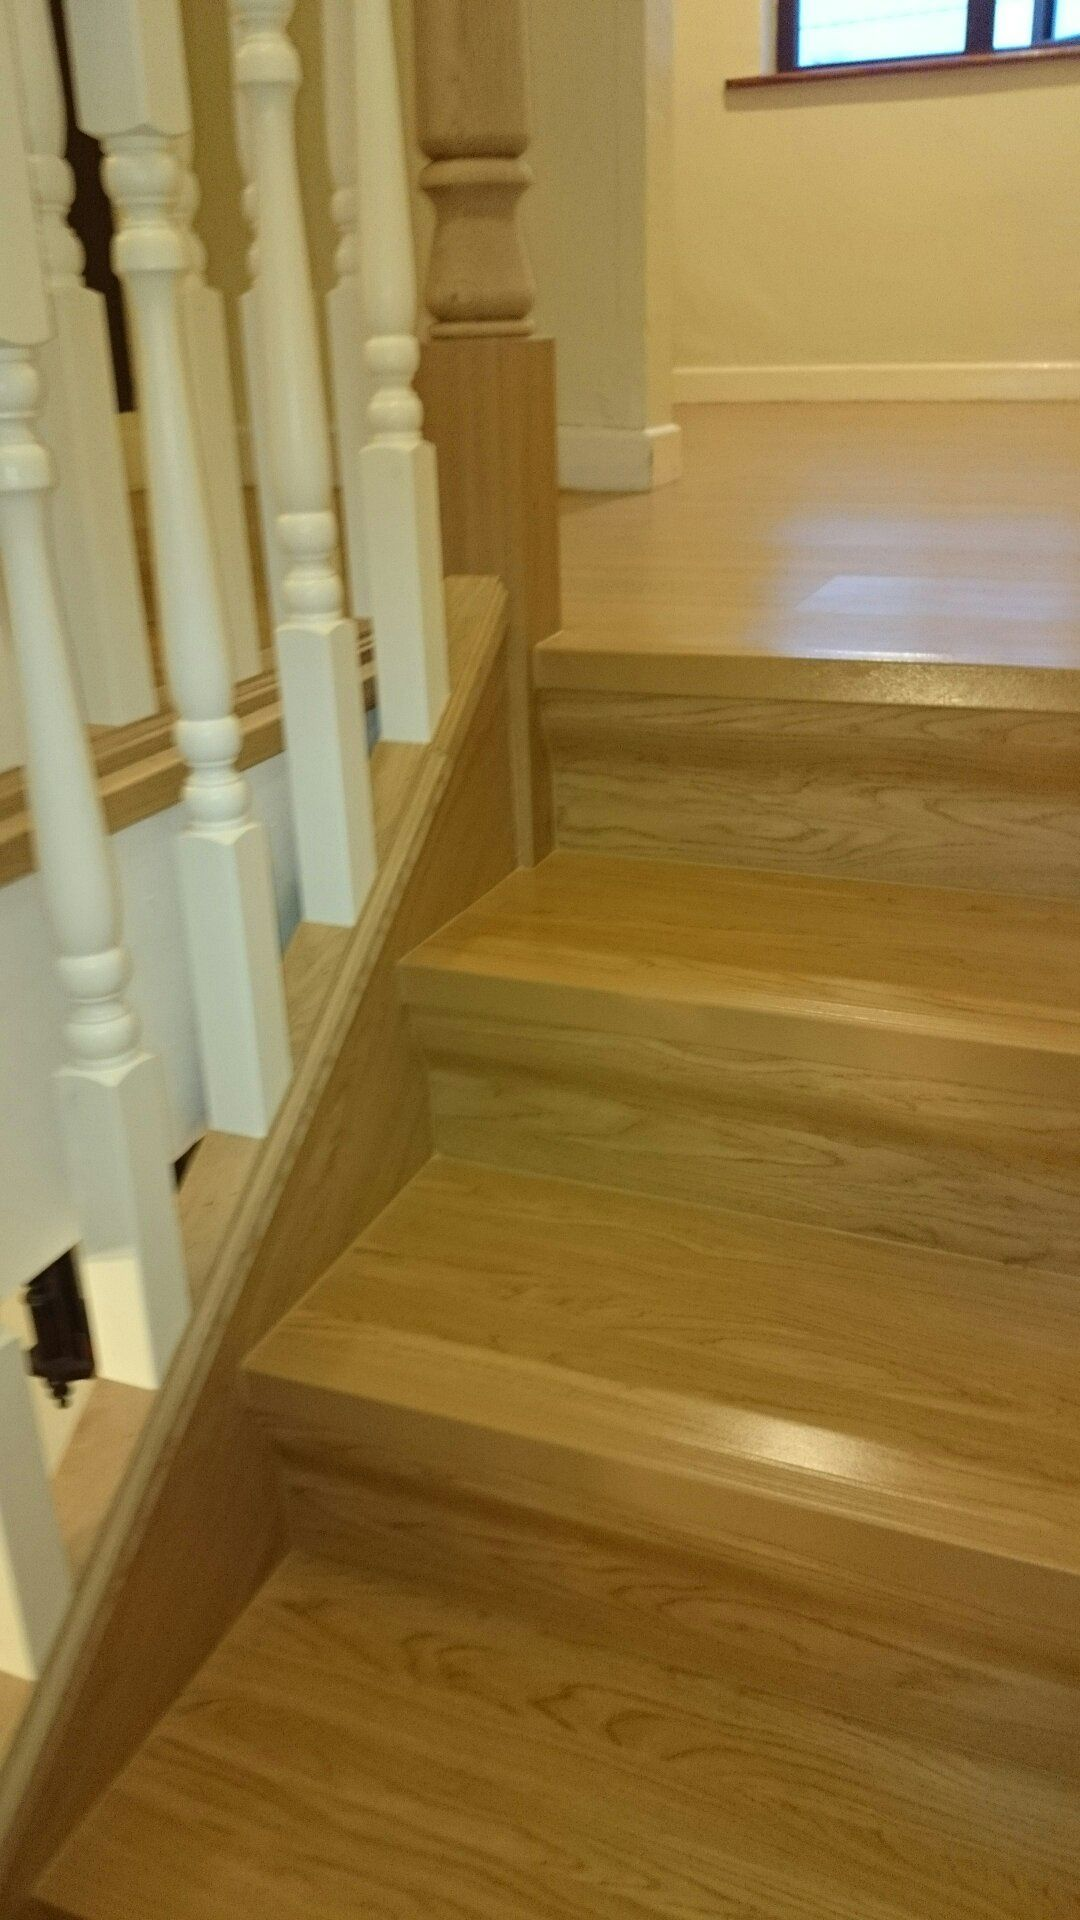 Staircase Renovation   Portas Oak Finish Stairs And Landing. Renovation  Also Included The Fitting Of Replacement Solid Oak Handrail And Newel Posts  And ...